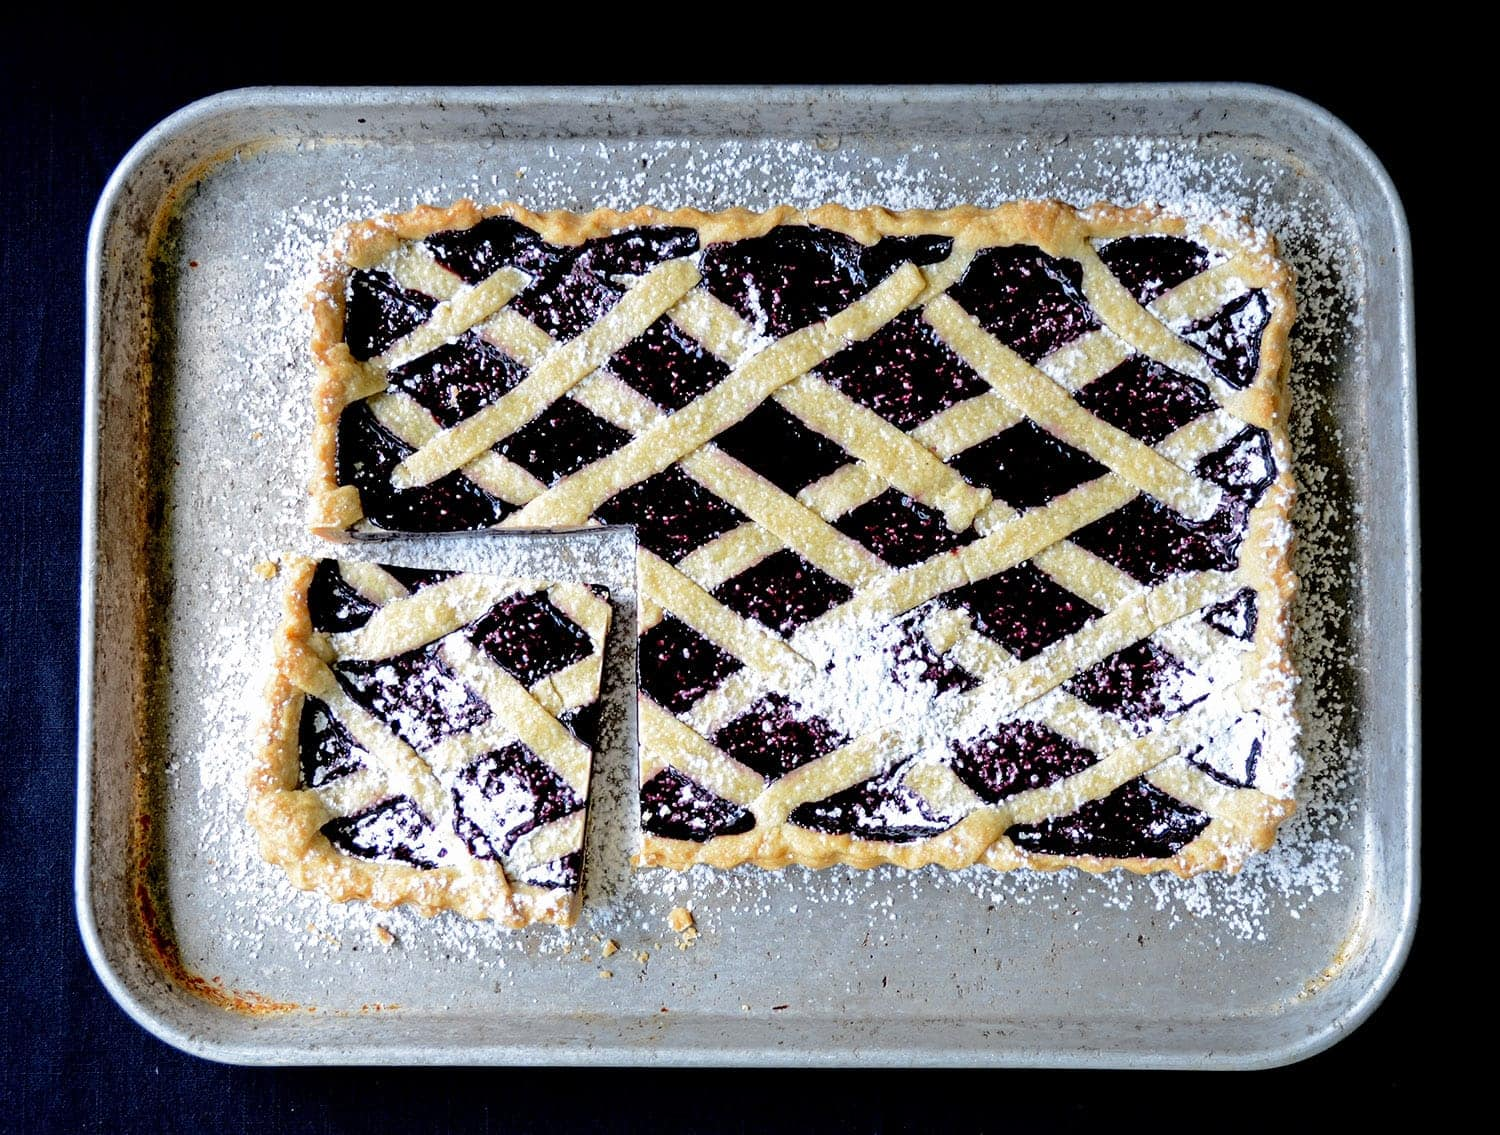 Mulberry Tart Web - Mulberry Tart with Cardamom and Black Pepper